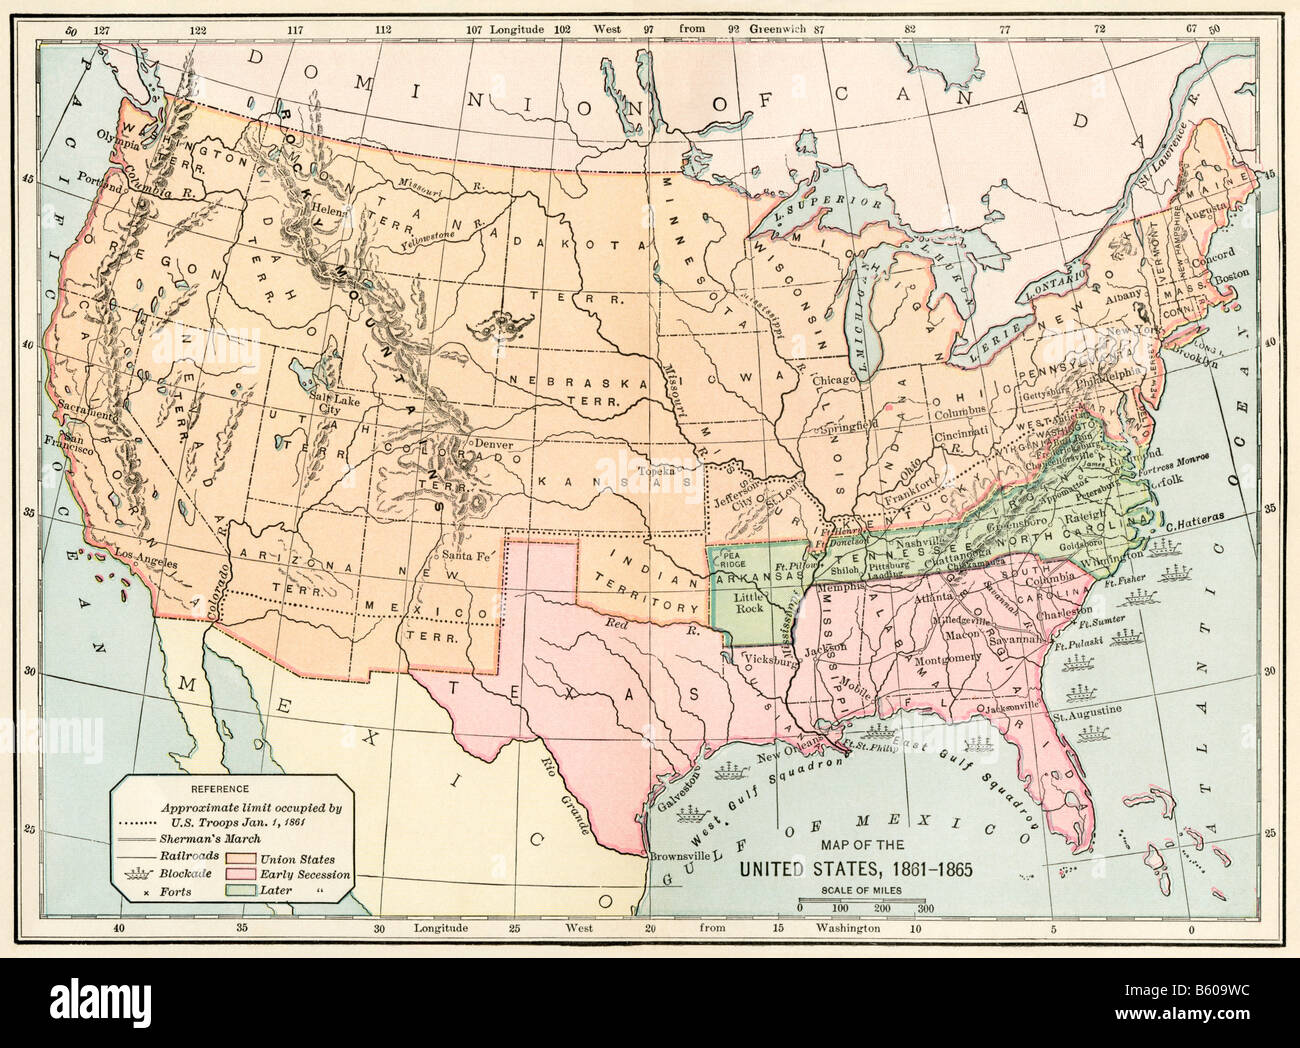 Map Of The United States During The Civil War To Stock - Us map 1861